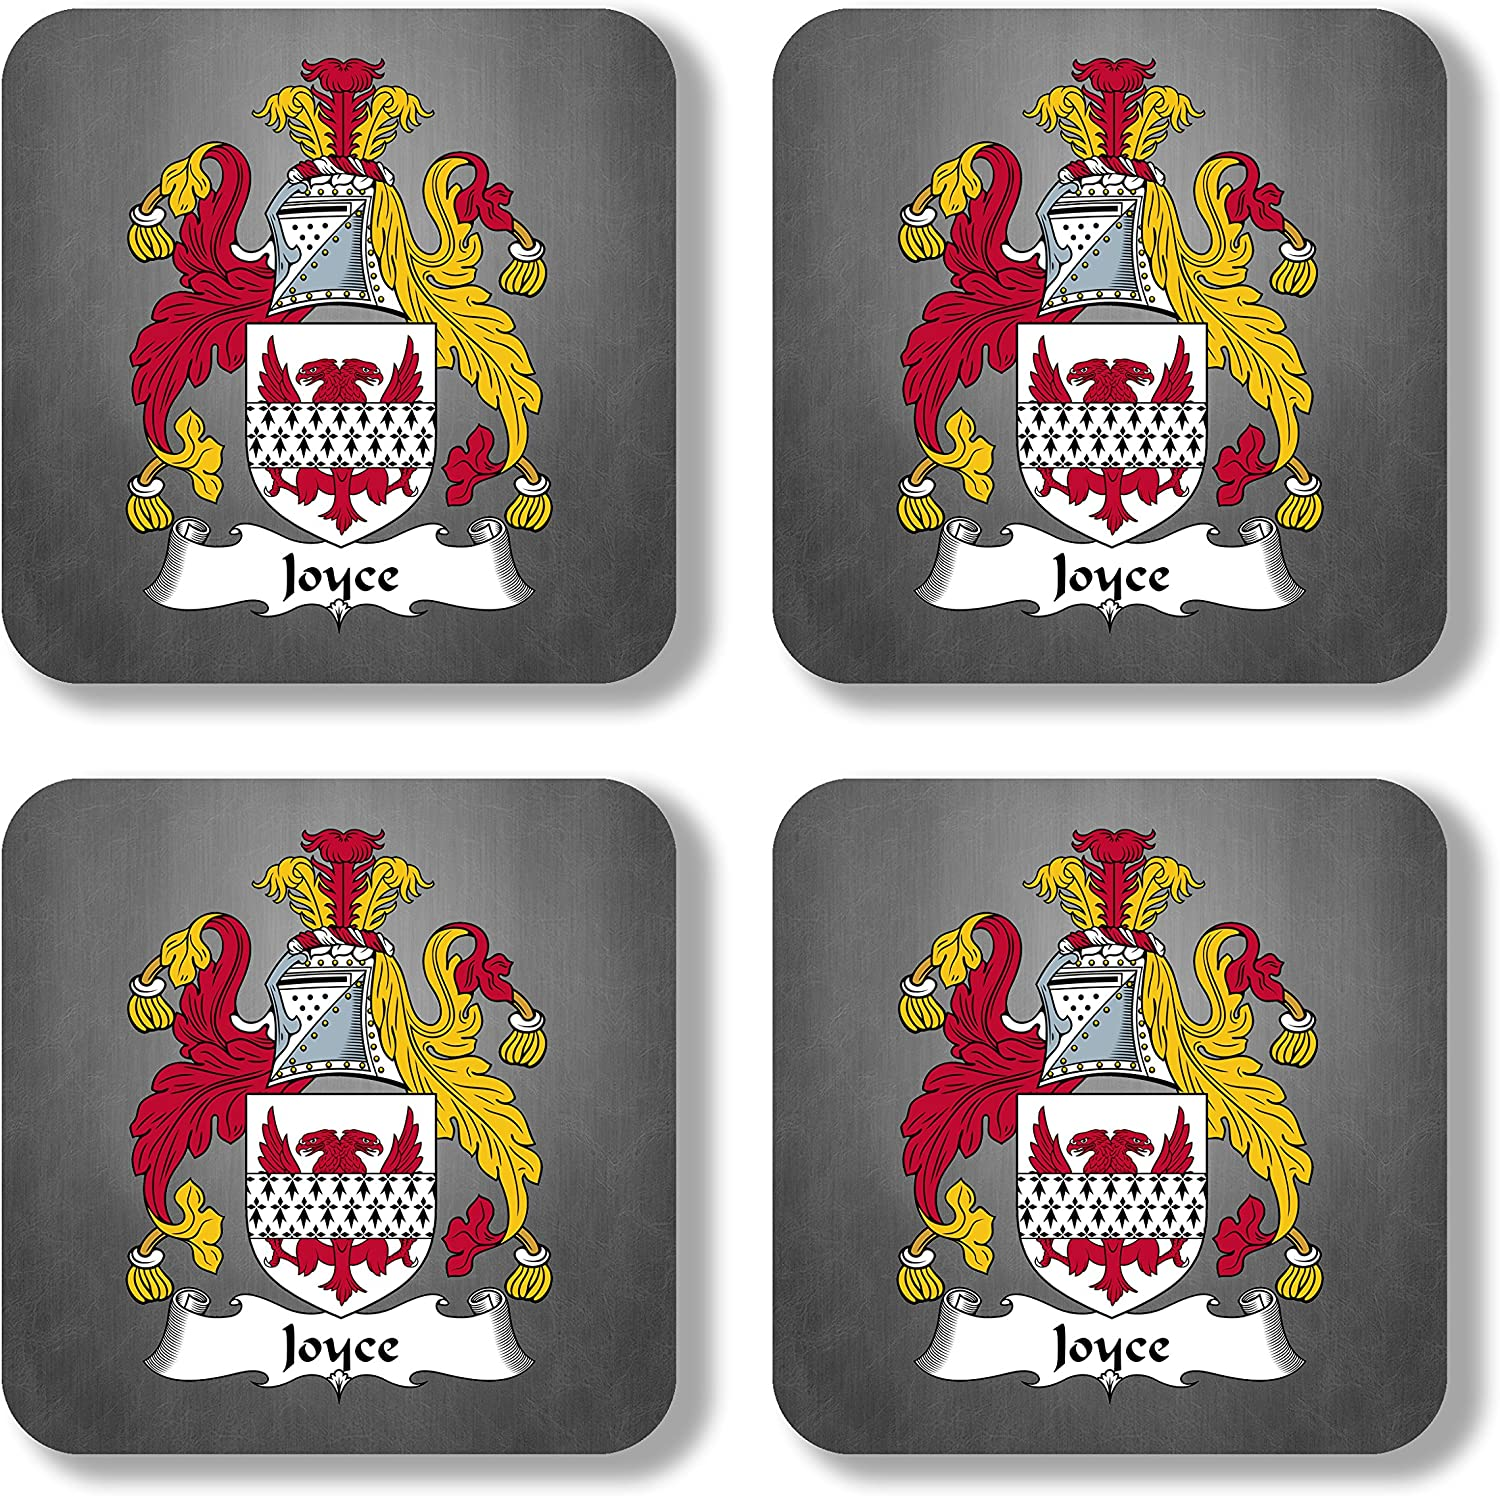 Joyce Coat of Arms/Family Crest Coaster Set, by Carpe Diem Designs – Made in the U.S.A.